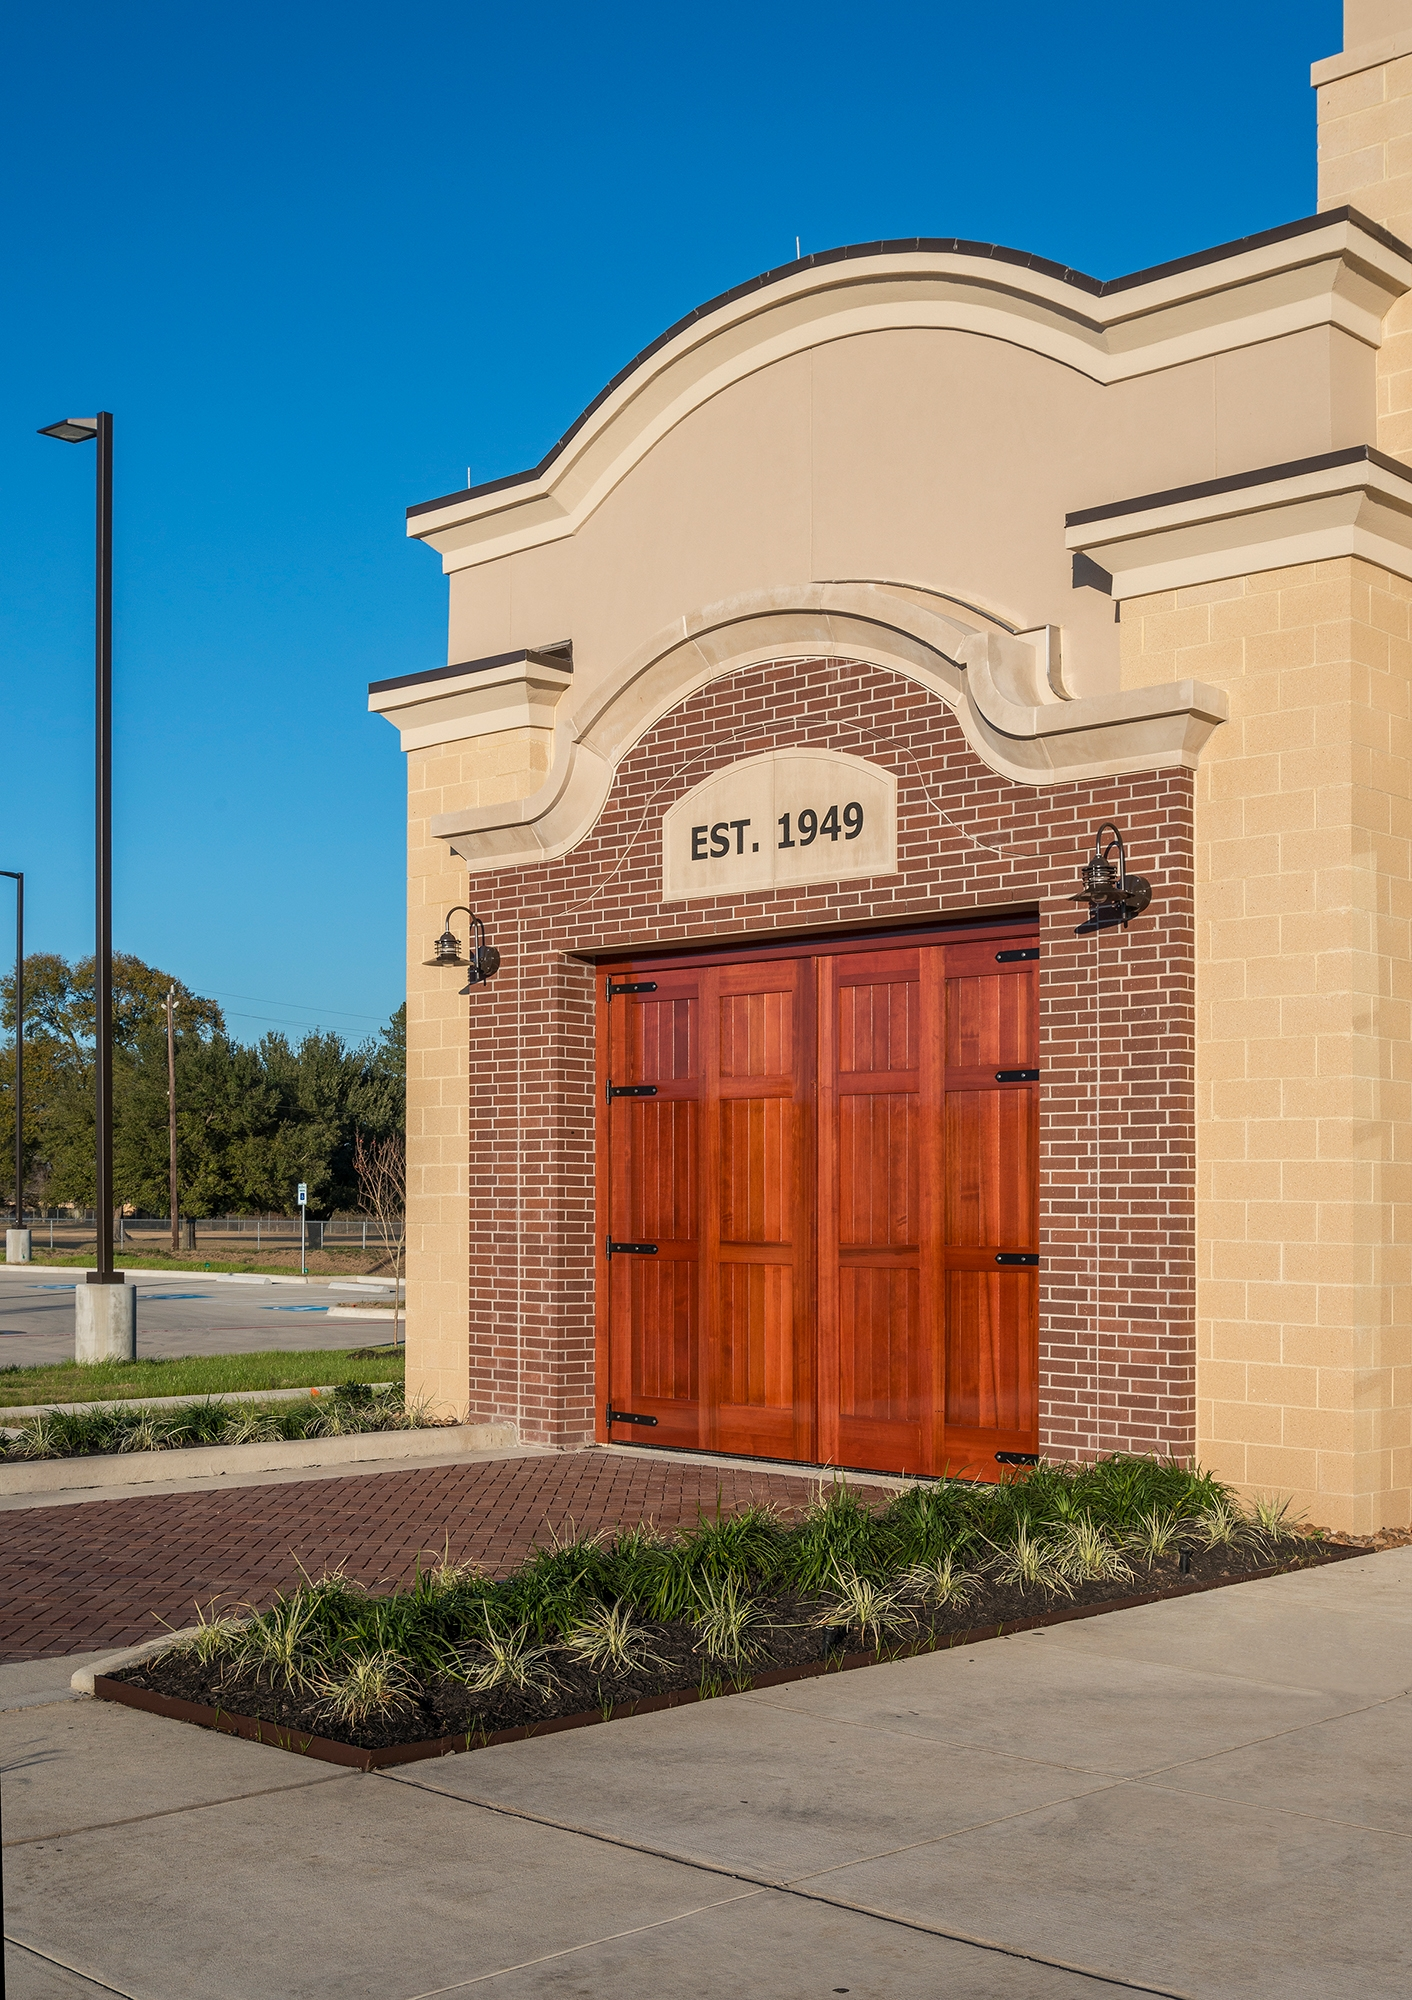 6. Channelview Fire and Administration Building